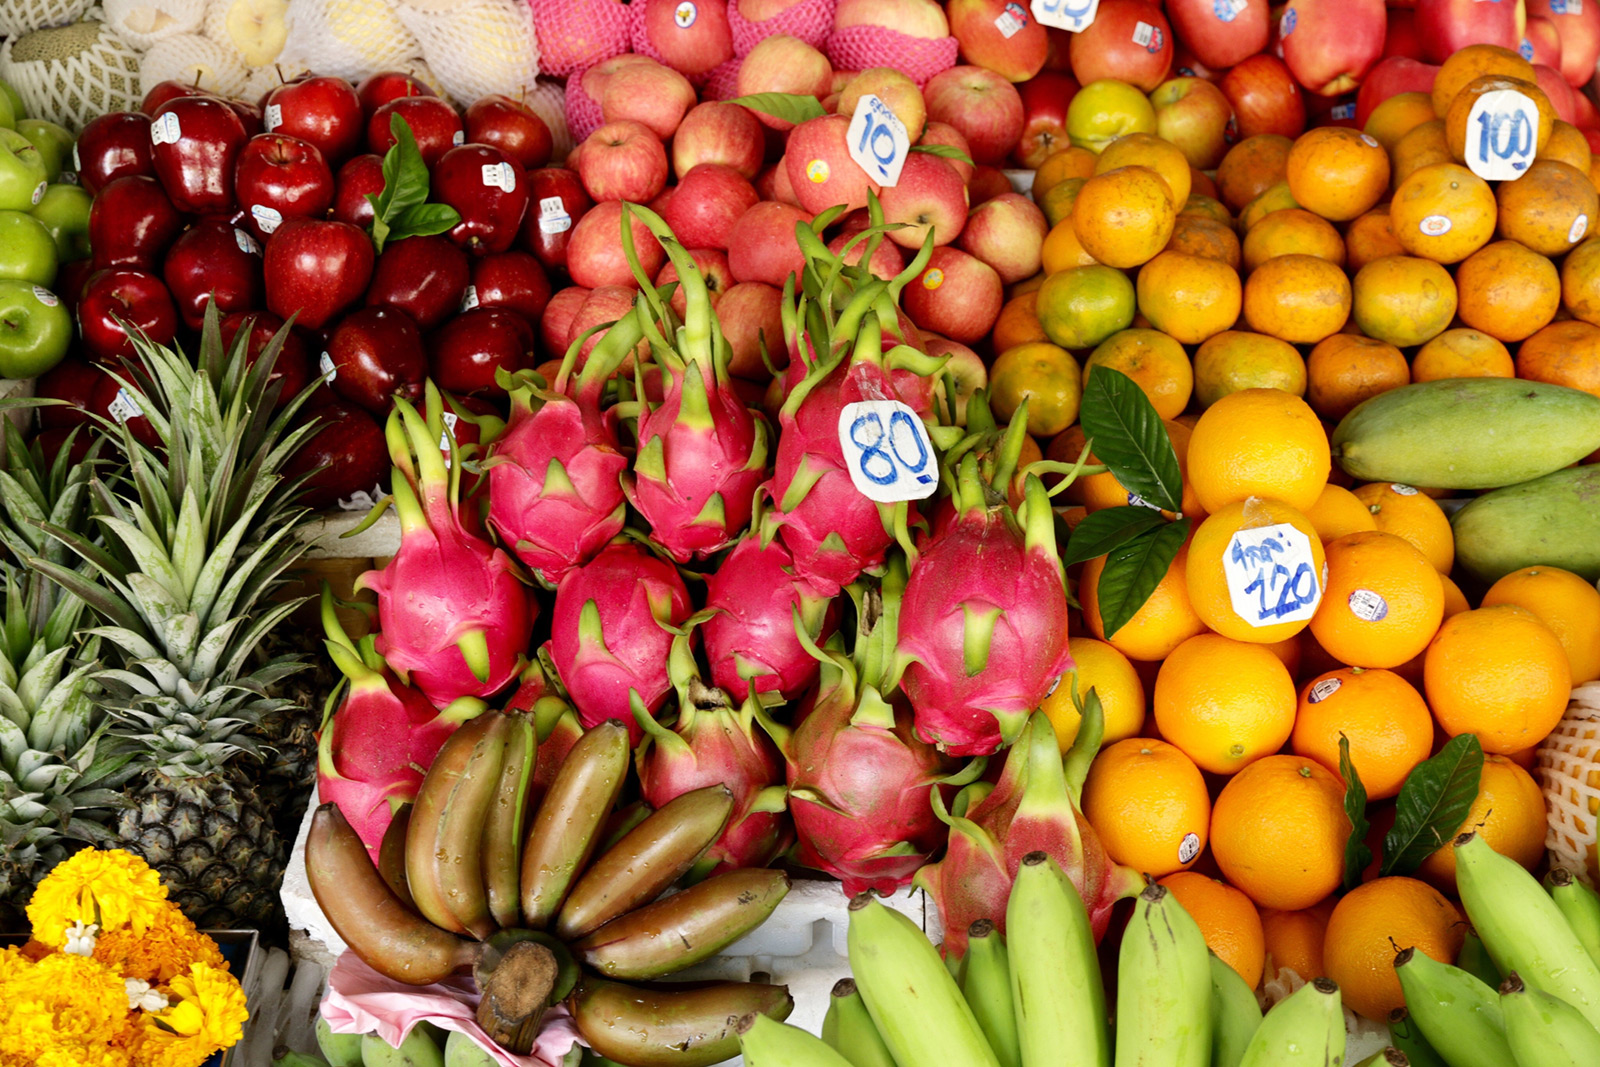 exotic-fruits-at-market.jpg